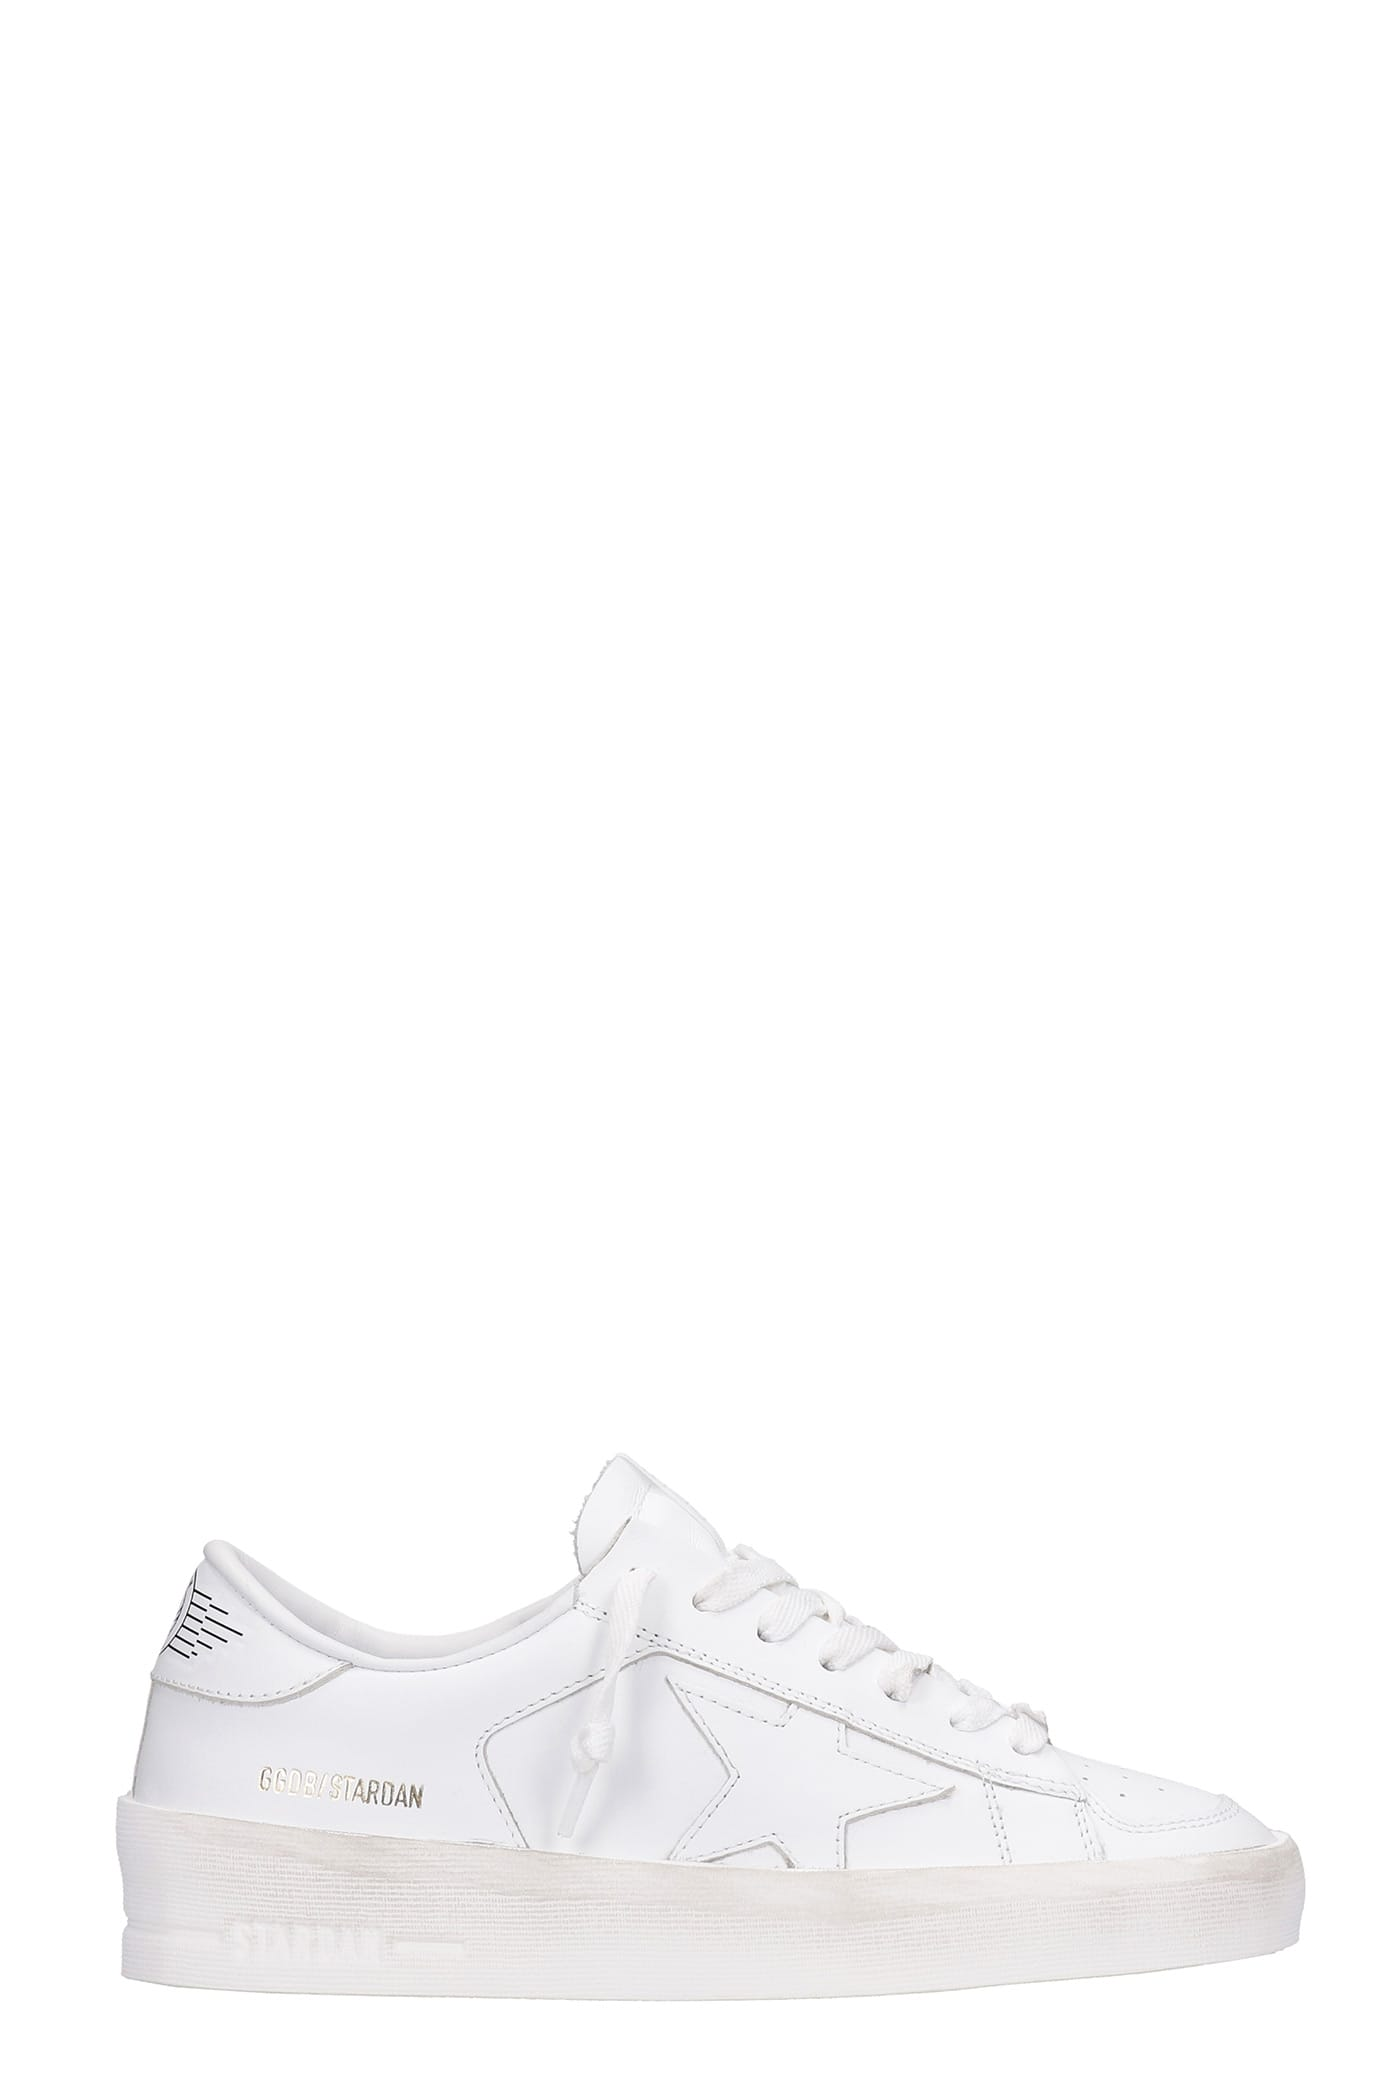 Golden Goose Stardan Sneakers In White Leather